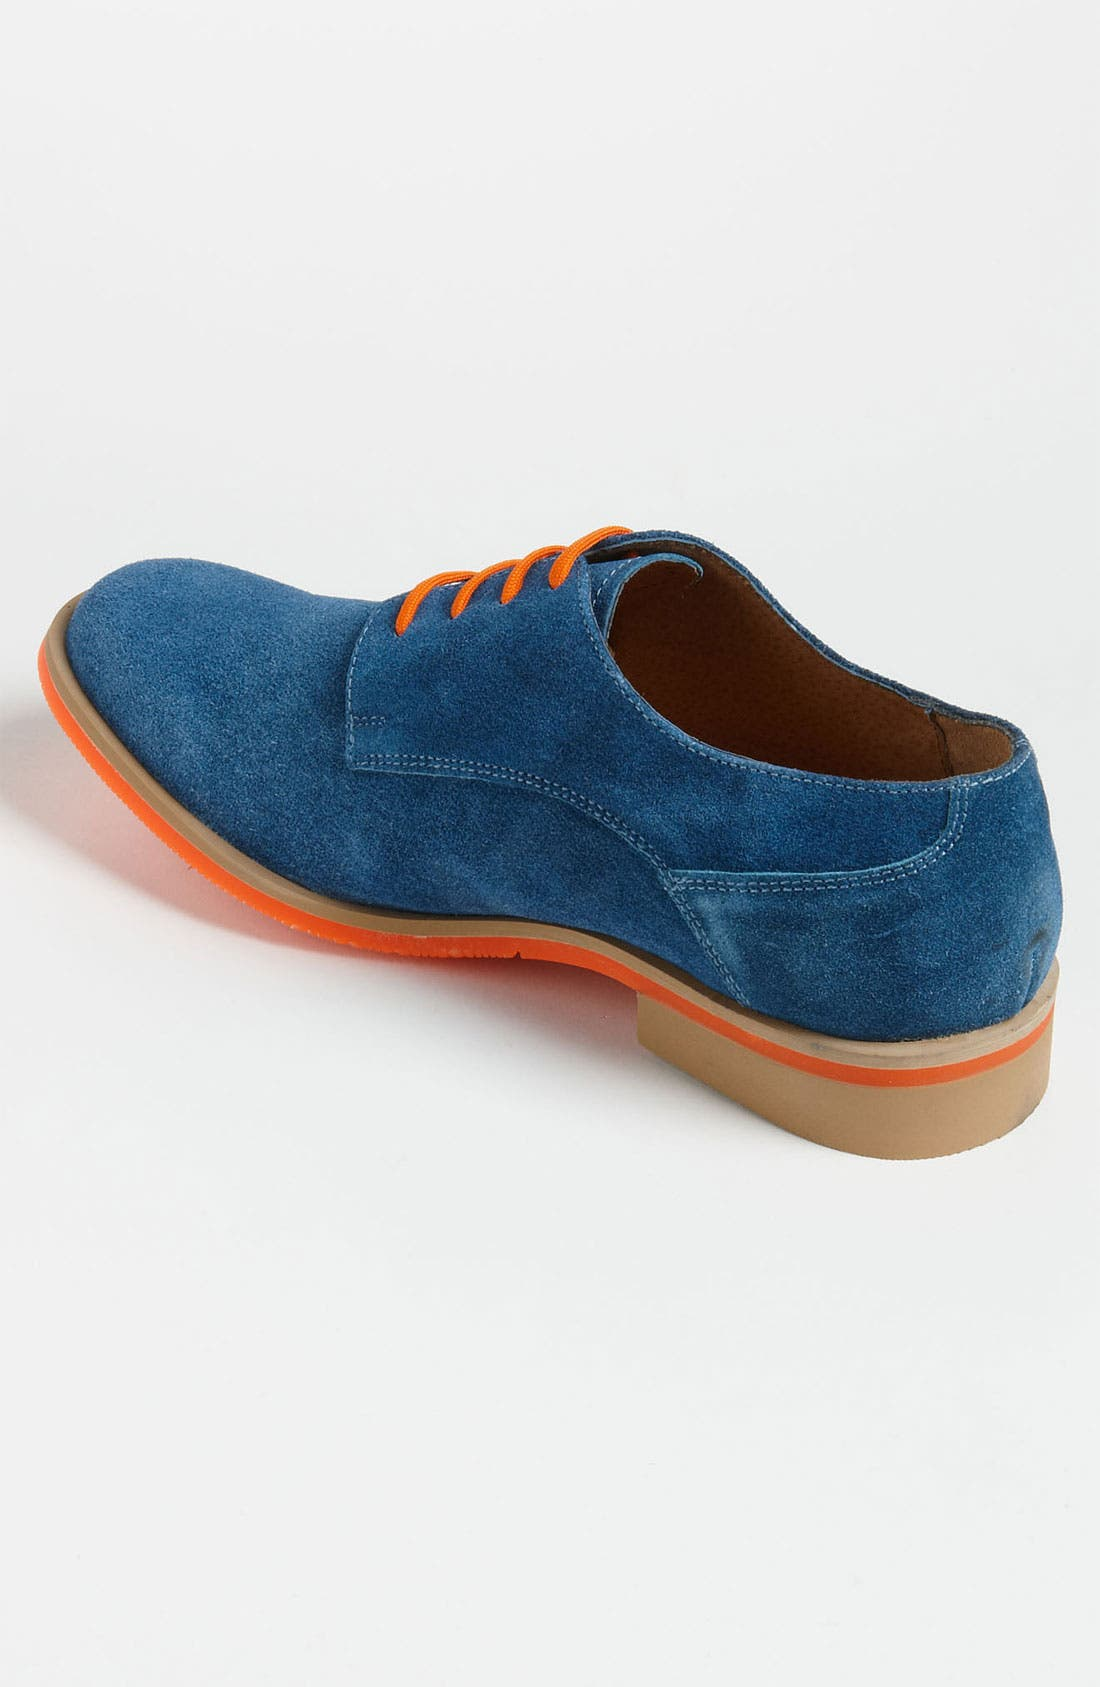 Alternate Image 2  - J.D. Fisk 'Callum' Suede Buck Shoe